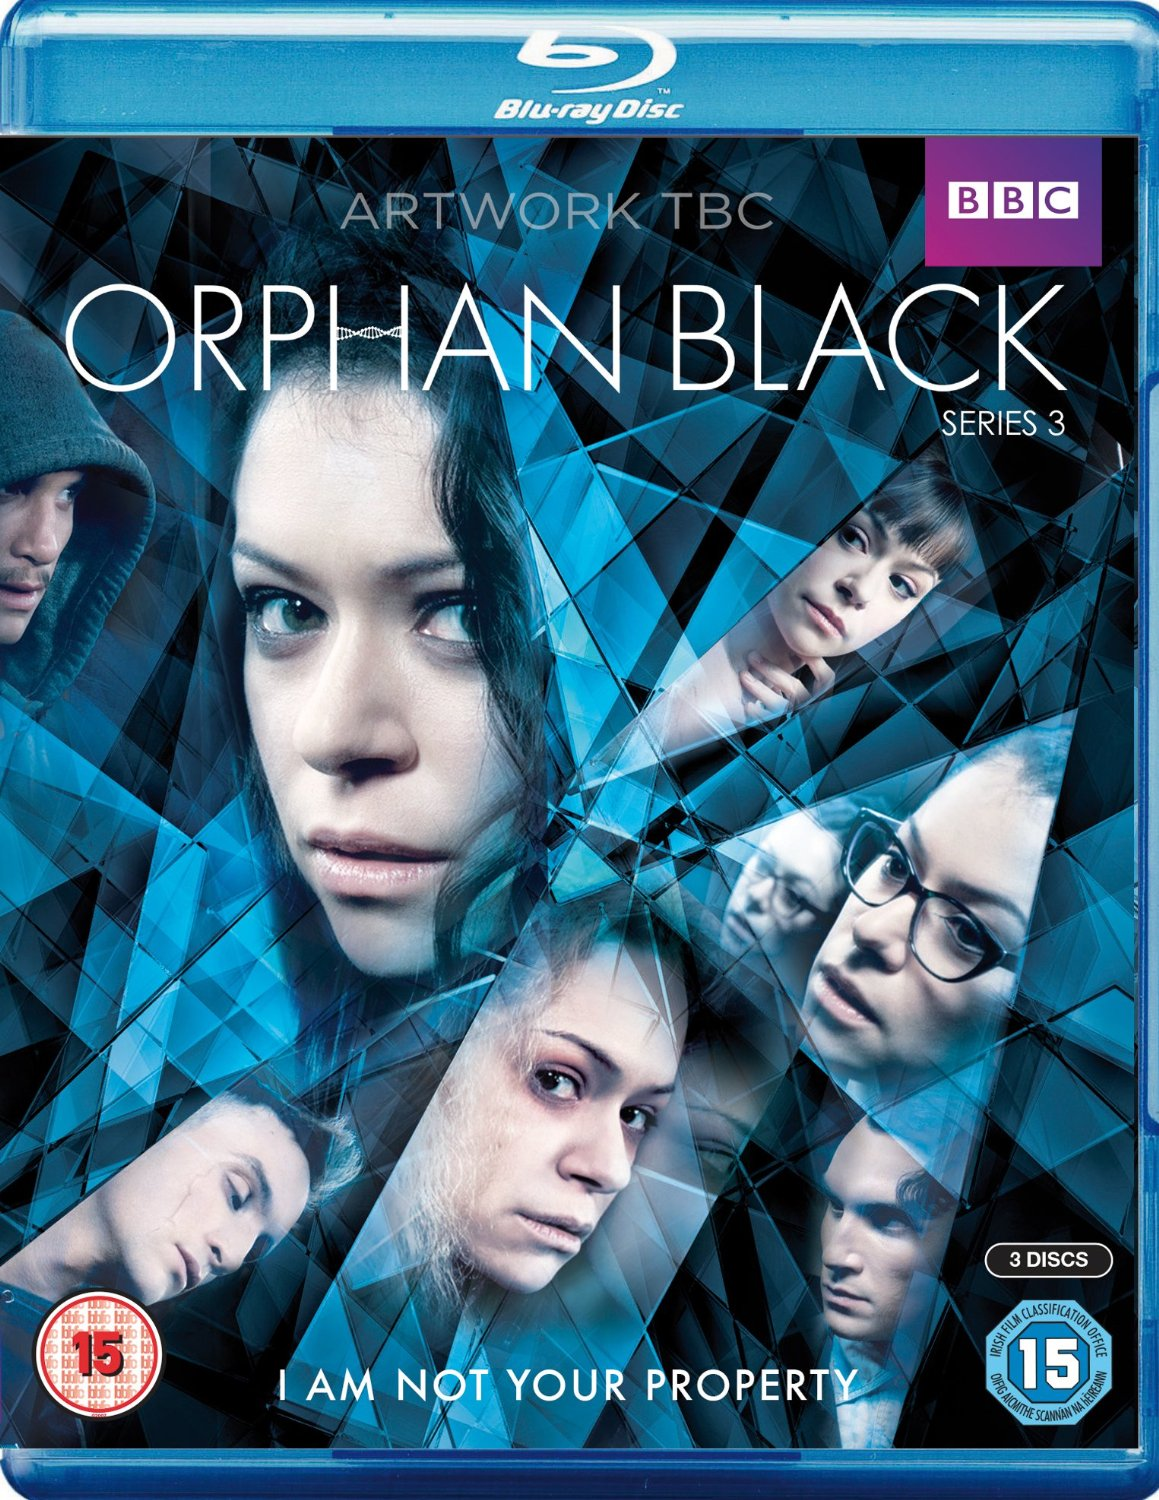 Orphan Black Season 3 Blu-ray review: Clone Wars